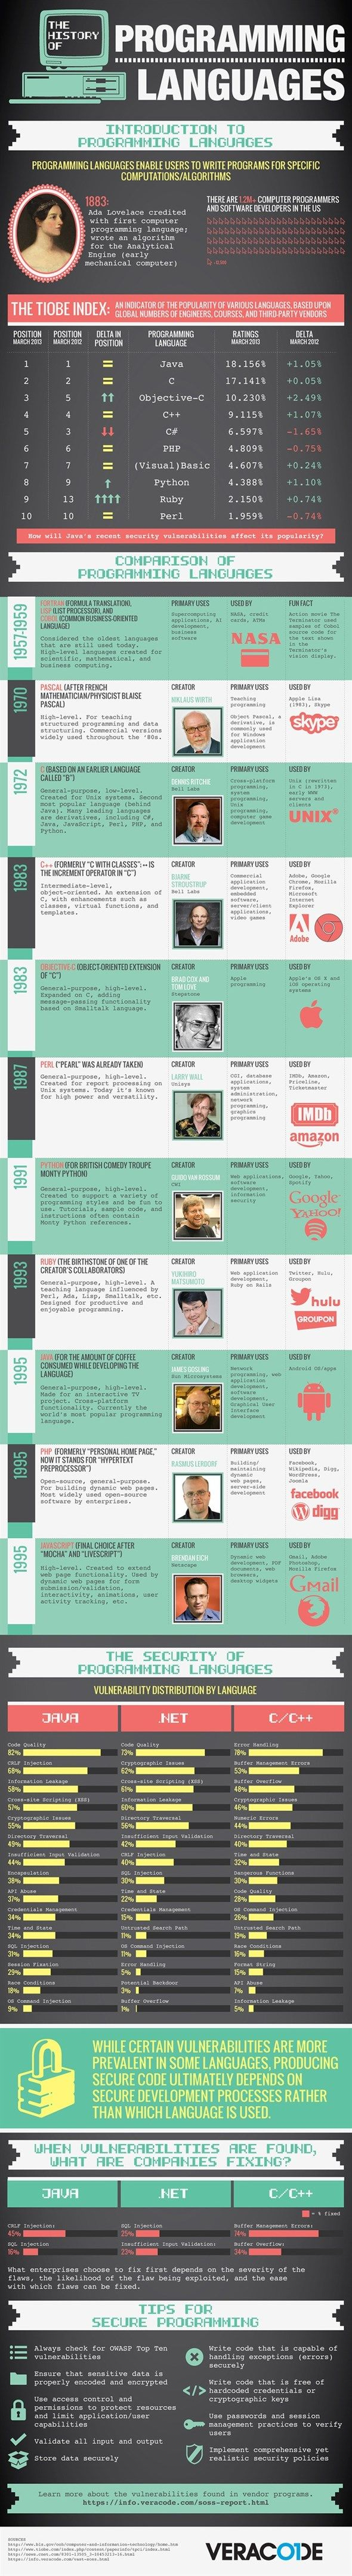 A History of Programming Languages